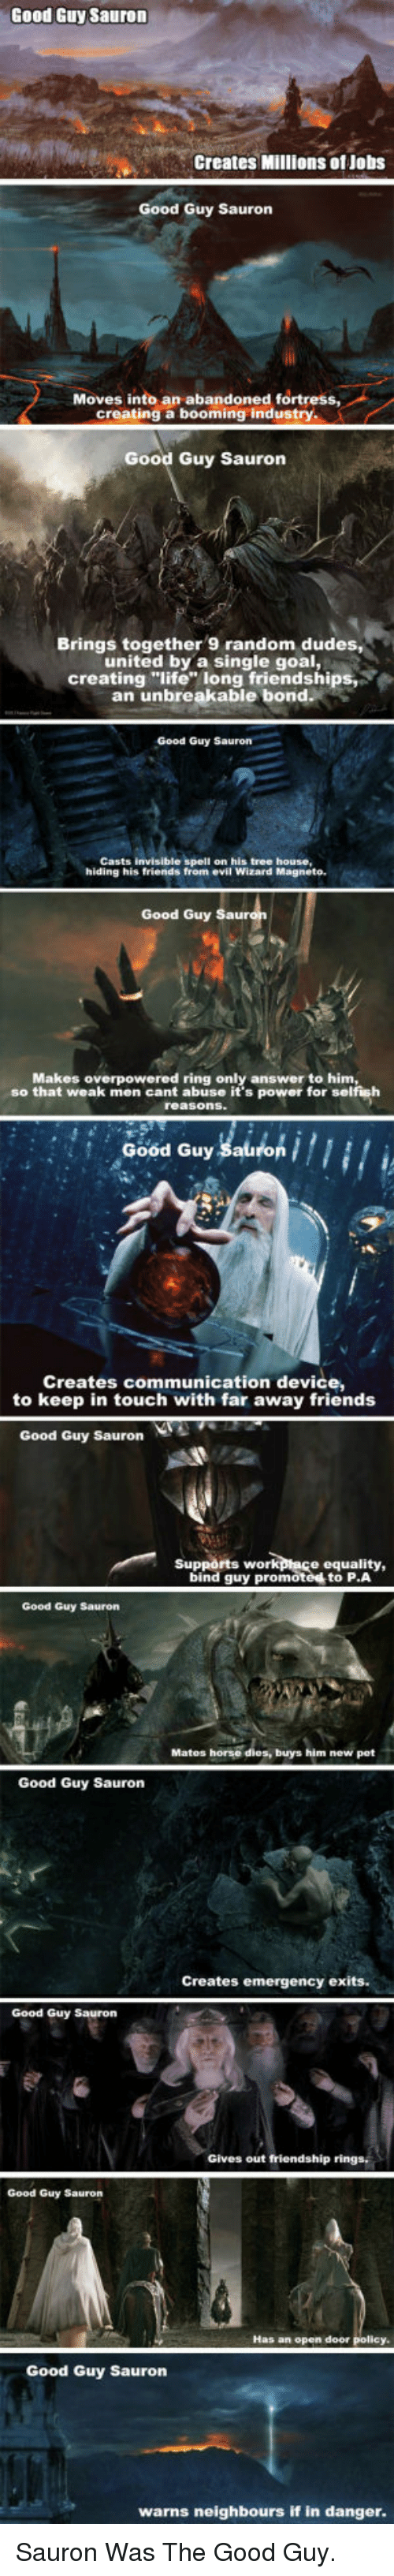 """Friends, Life, and Work: Good Guy Sauron  Creates Millions of Jobs  Good Guy Sauron  Moves into an abandoned fortress  creating a booming industry  Good Guy Sauron  Brings together 9 random dudes,  united by a single goal,  creating """"life long friendships  an unbreakable bond  Good Guy Sauron  Casts invisible spell on his tree house,  hiding his friends from evil Wizard Magneto  Good Guy  Makes overpowered ring only answer to him  so that weak men cant abuse it's power for selfish  Good Guy Sauron  Creates communication device,  to keep in touch with far away friends  Good Guy Sauron  Supports work  ptace equality,  bind guy promoted to P.A  Good Guy Sauron  Mates horse dies, buys him new pet  Good Guy Sauron  Creates emergency exits.  Good Guy Sauron  Gives out friendship rings,  Good Guy Sauron  Has an open door  Good Guy Saurorn  warns neighbours if in danger <p>Sauron Was The Good Guy.</p>"""